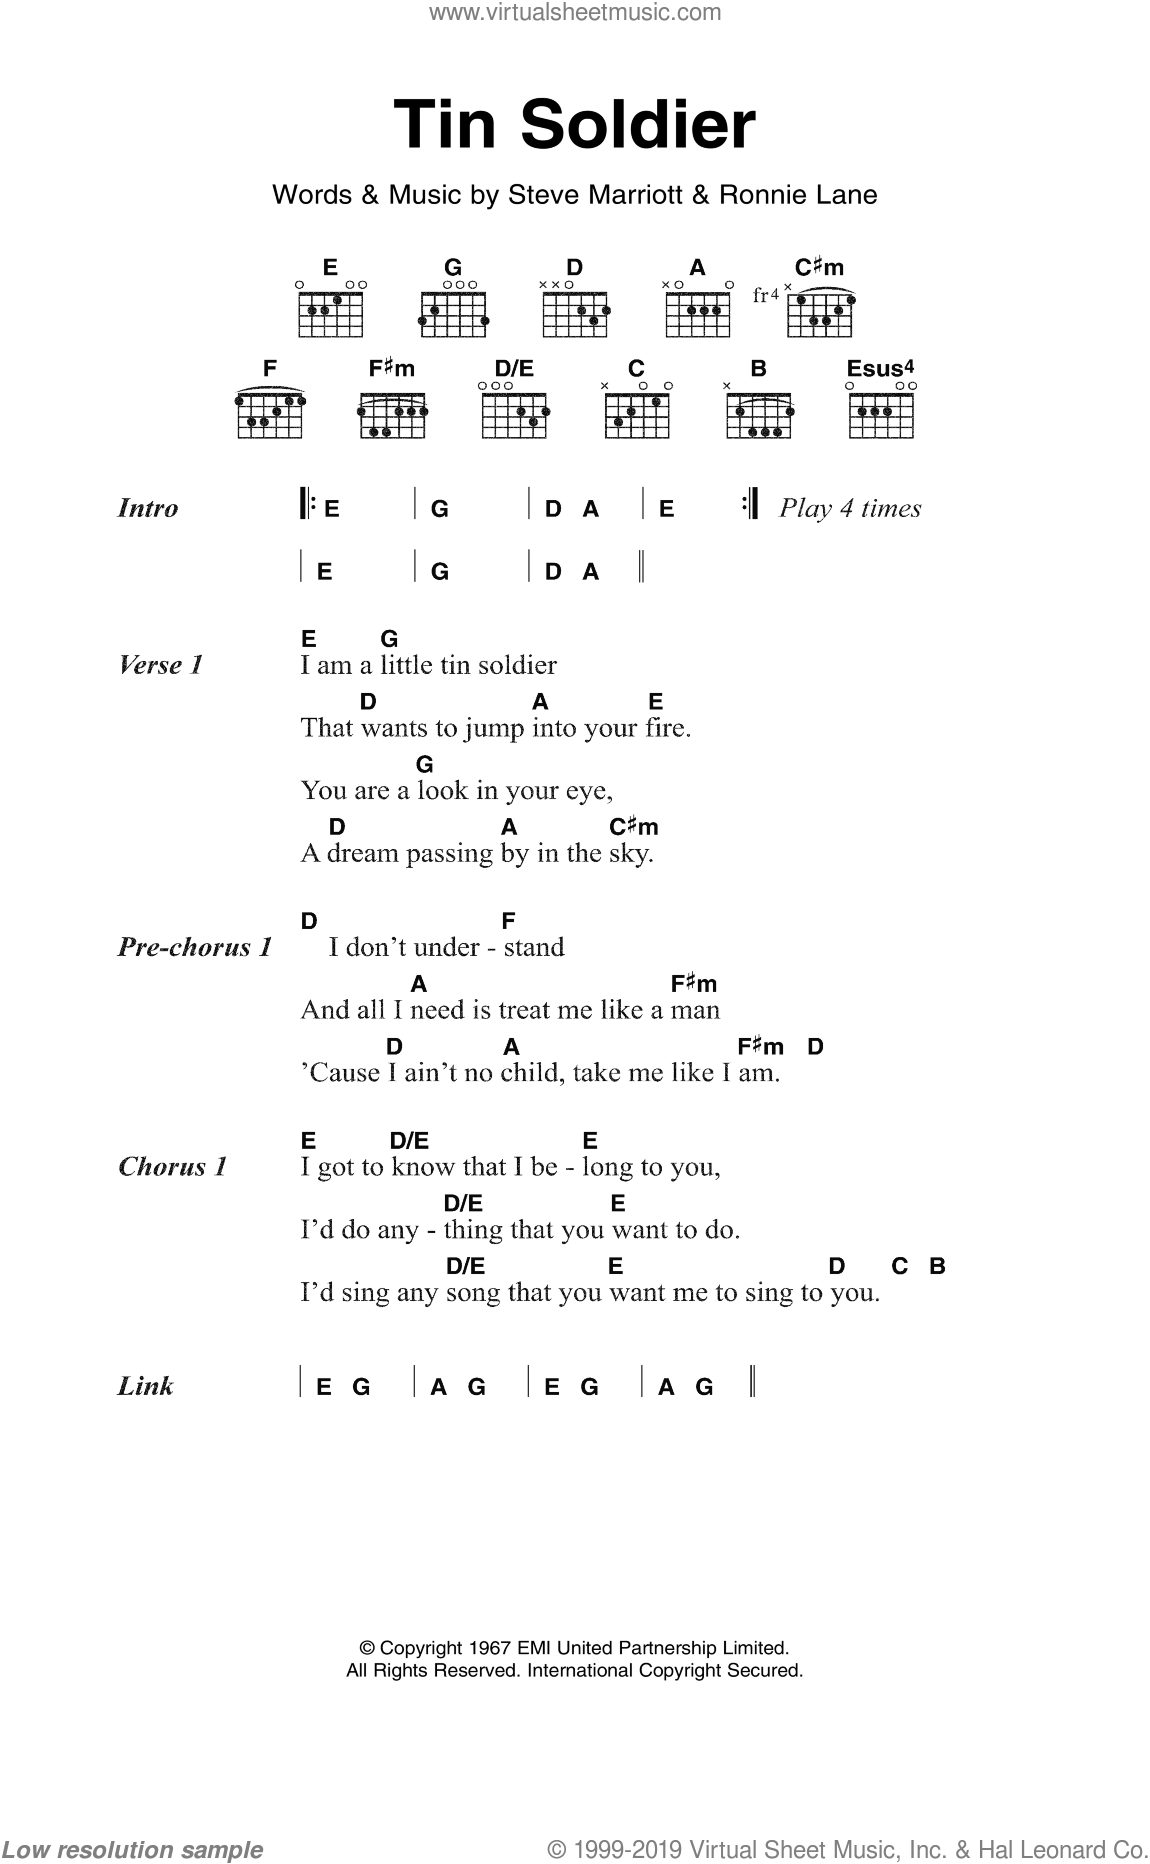 Tin Soldier sheet music for guitar (chords) by The Small Faces, Ronnie Lane and Steve Marriott, intermediate skill level